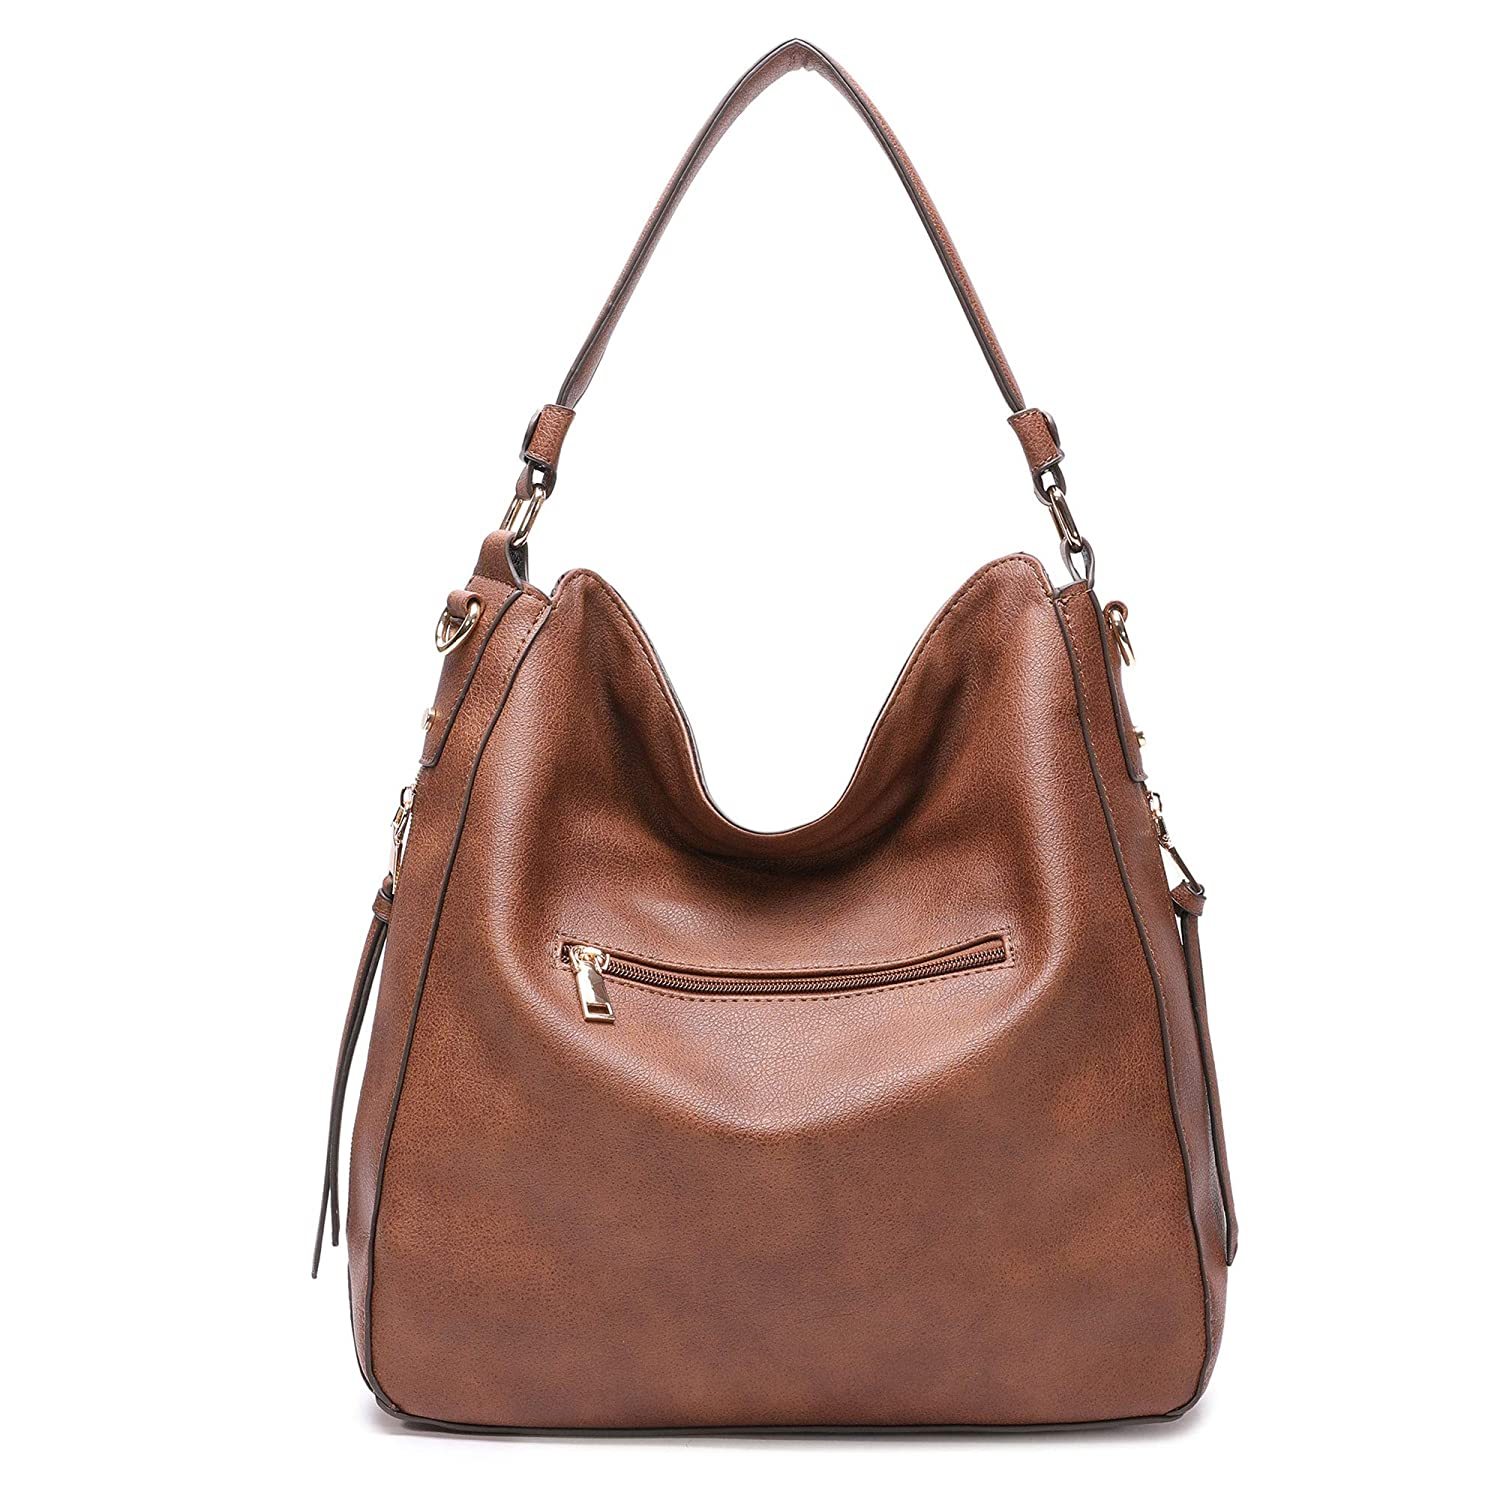 DDDH New Vintage Hobo Handbags Shoulder Bags Durable Leather Tote Messenger  Bags Bucket Bag for Women Ladies Girls(Brown)  Amazon.ca  Luggage   Bags a70b4ab2bb084